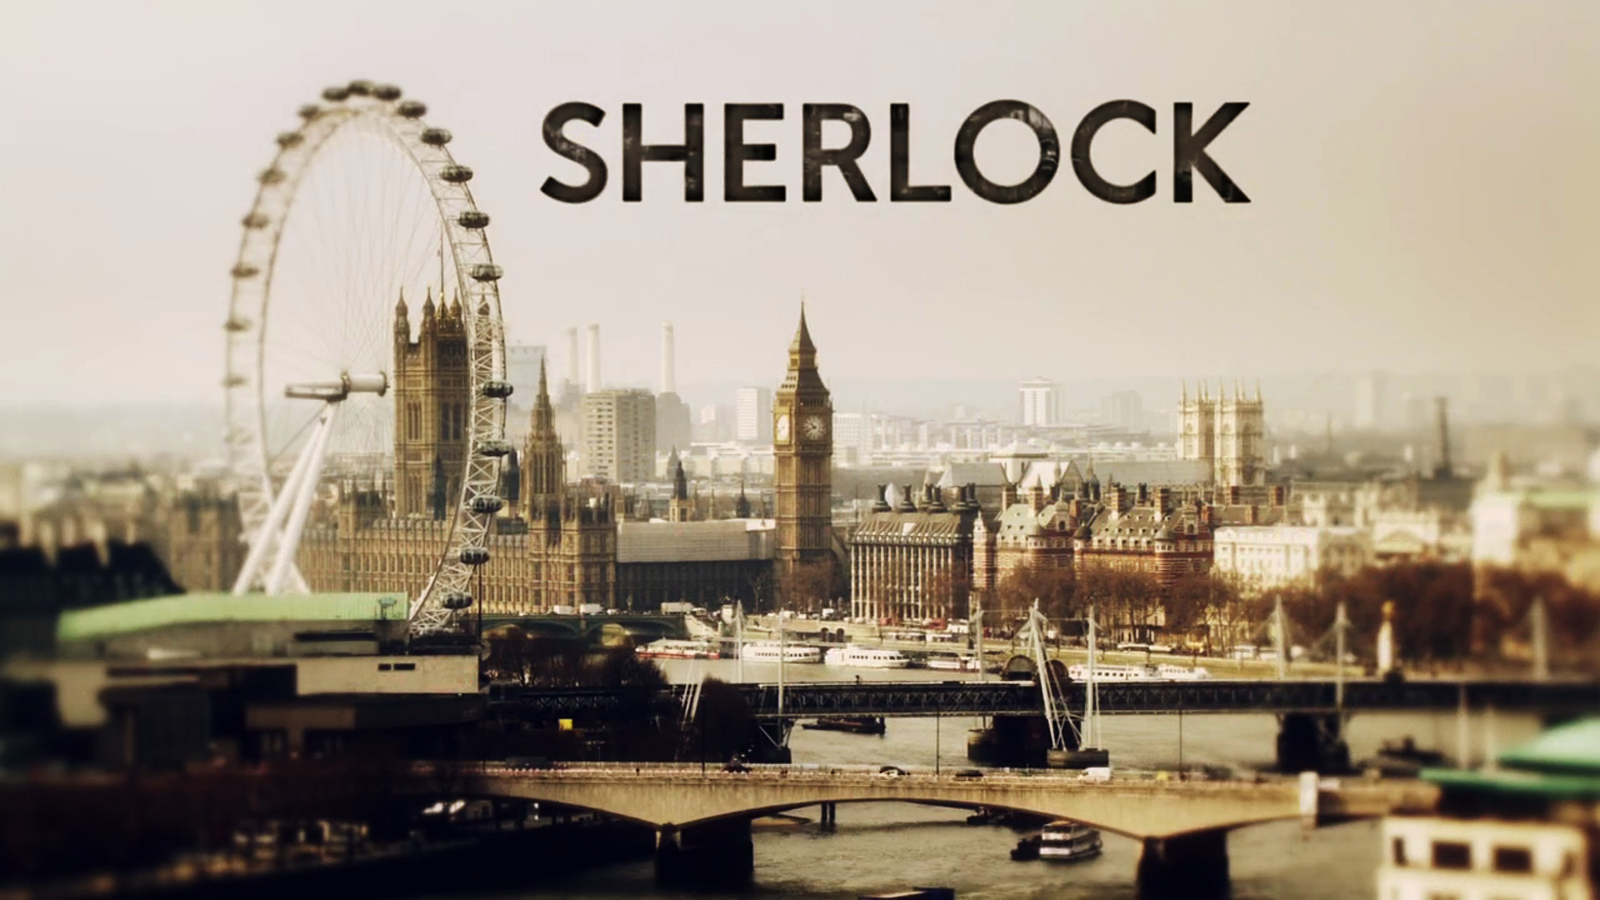 http://4.bp.blogspot.com/-Q8Zuul0rKqU/UKy-0c3xcrI/AAAAAAAAGRc/Wp4hw5fymZ0/s1600/Sherlock-TV-Series-London-HD-Wallpaper_Vvallpaper.Net.png